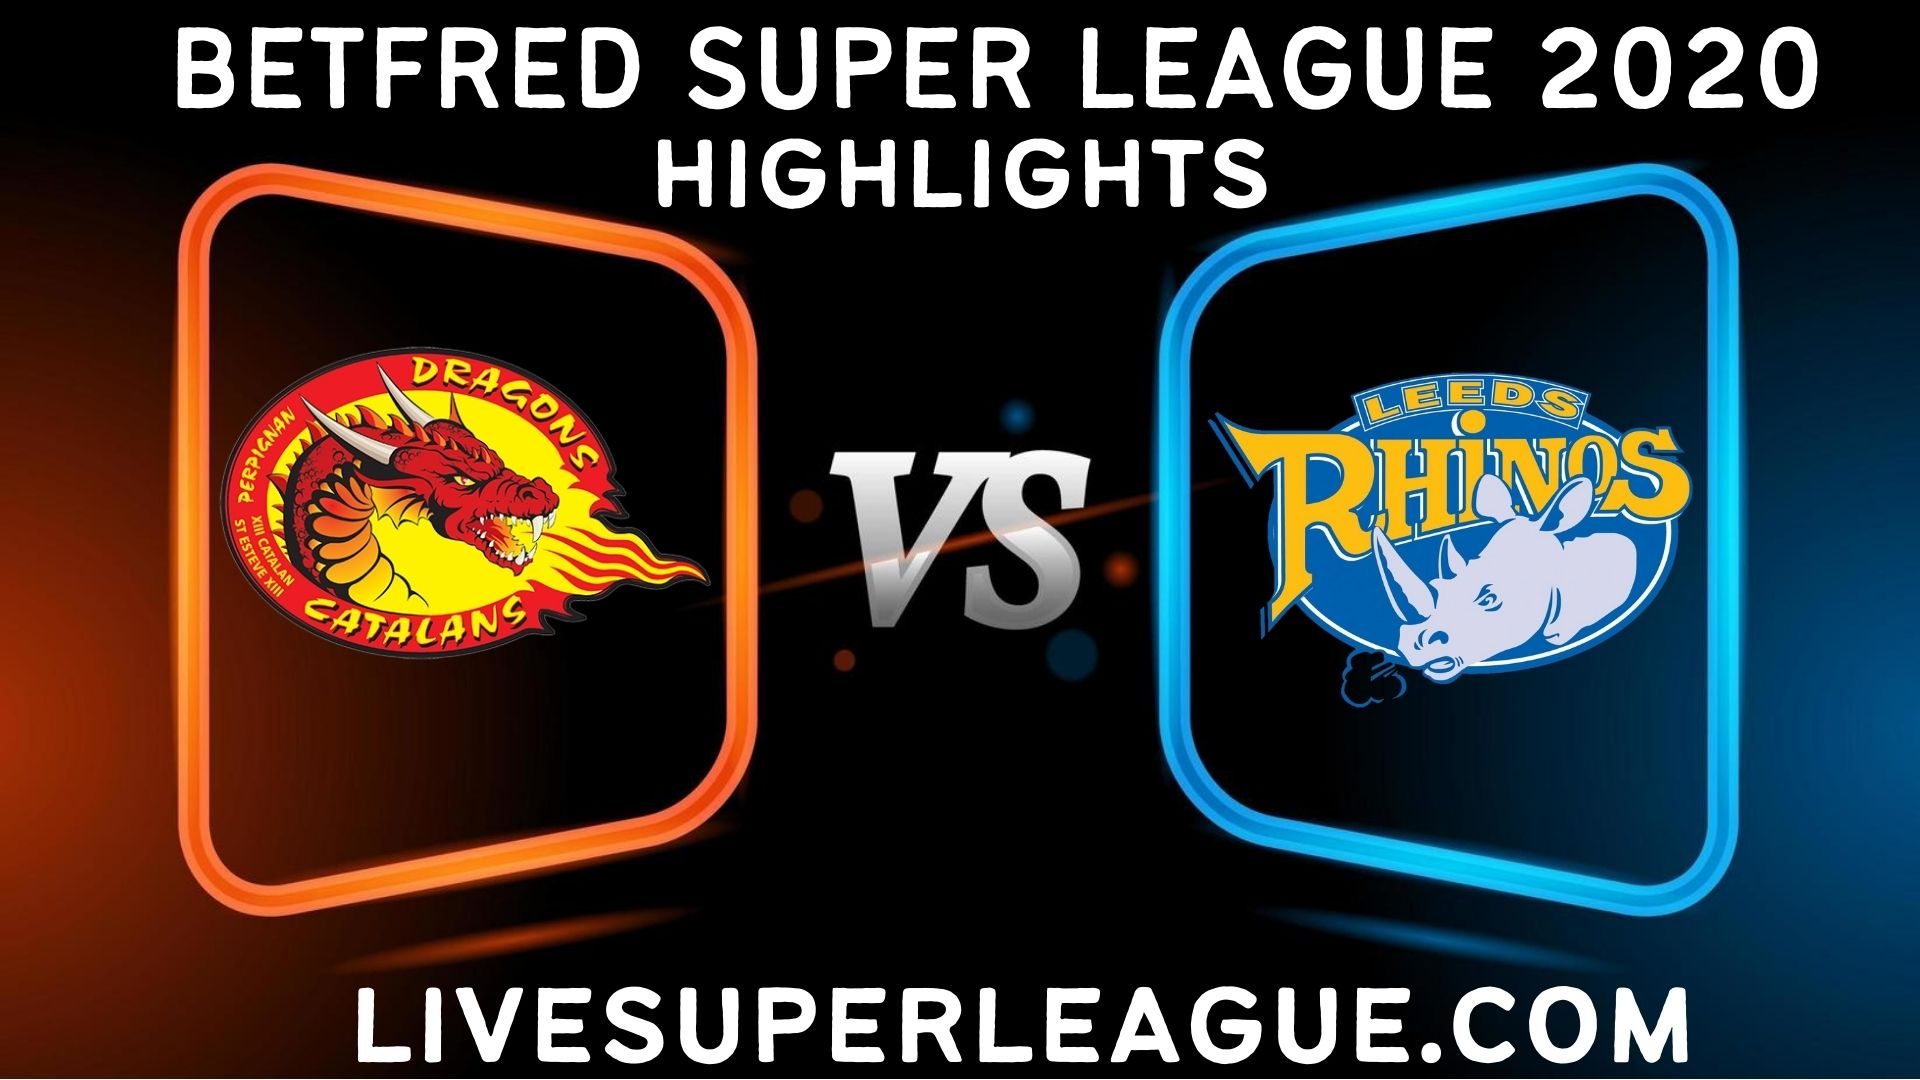 Catalans Dragons vs Leeds Rhinos Highlights 2020